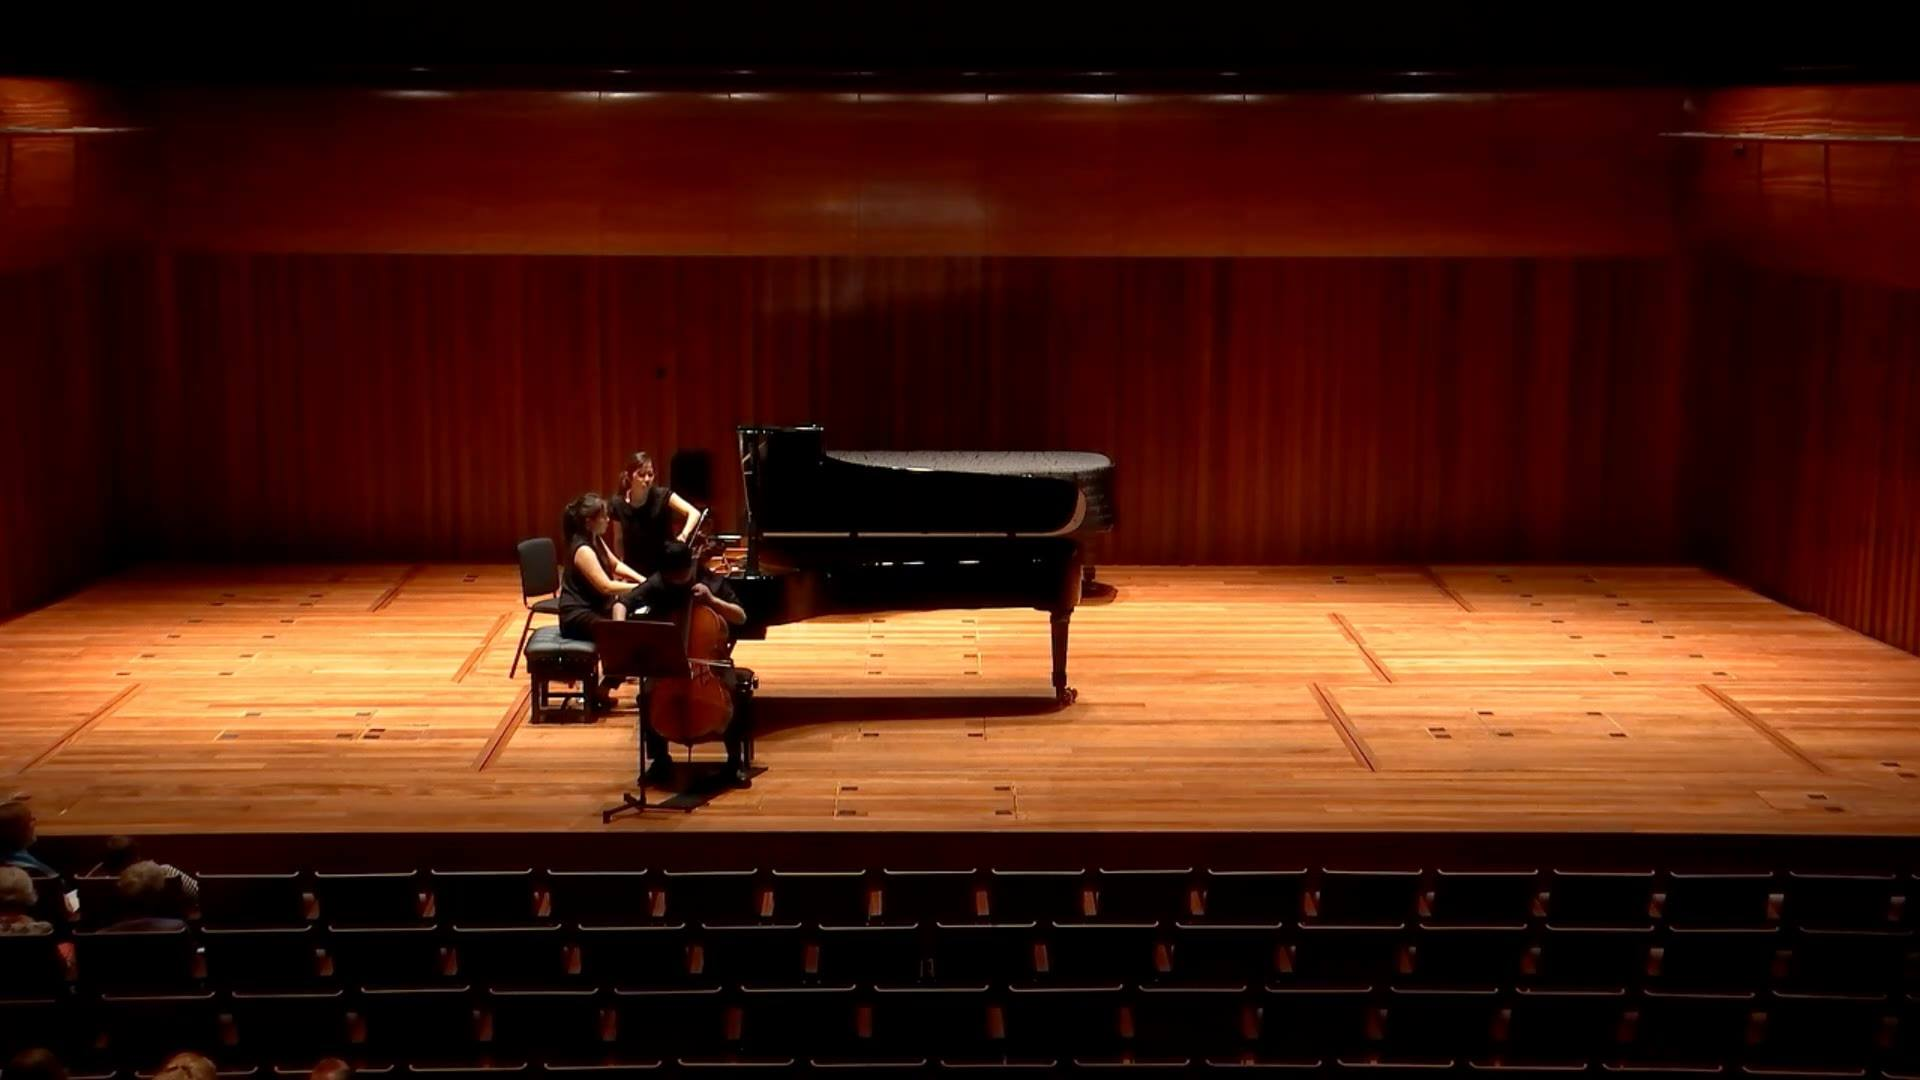 {Old Recording 重溫} Phoebe's recital in 2017. Faure's Elegie excerpt, Milton Court Concert Hall, Barbican, London. Piano: Phoebe Yu Cello: Kai-Hei Chor, Cellist Bow: WaiSing Cheung's amazing masterpiece @Violin Brothers!  (Don't ask me about the cello